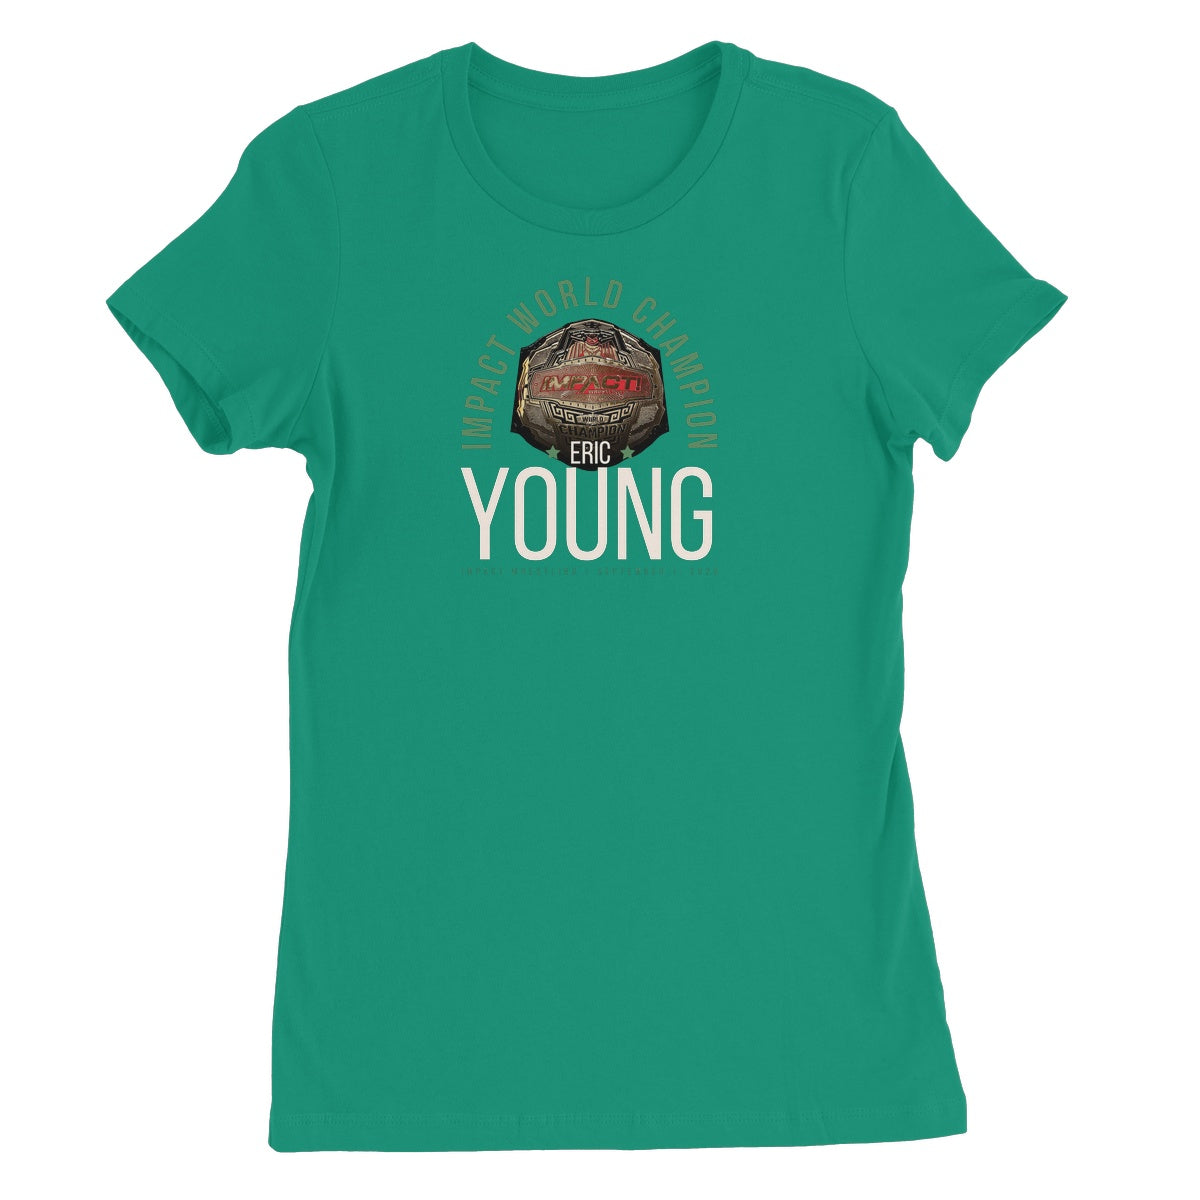 Eric Young - Impact Champ Women's Favourite T-Shirt